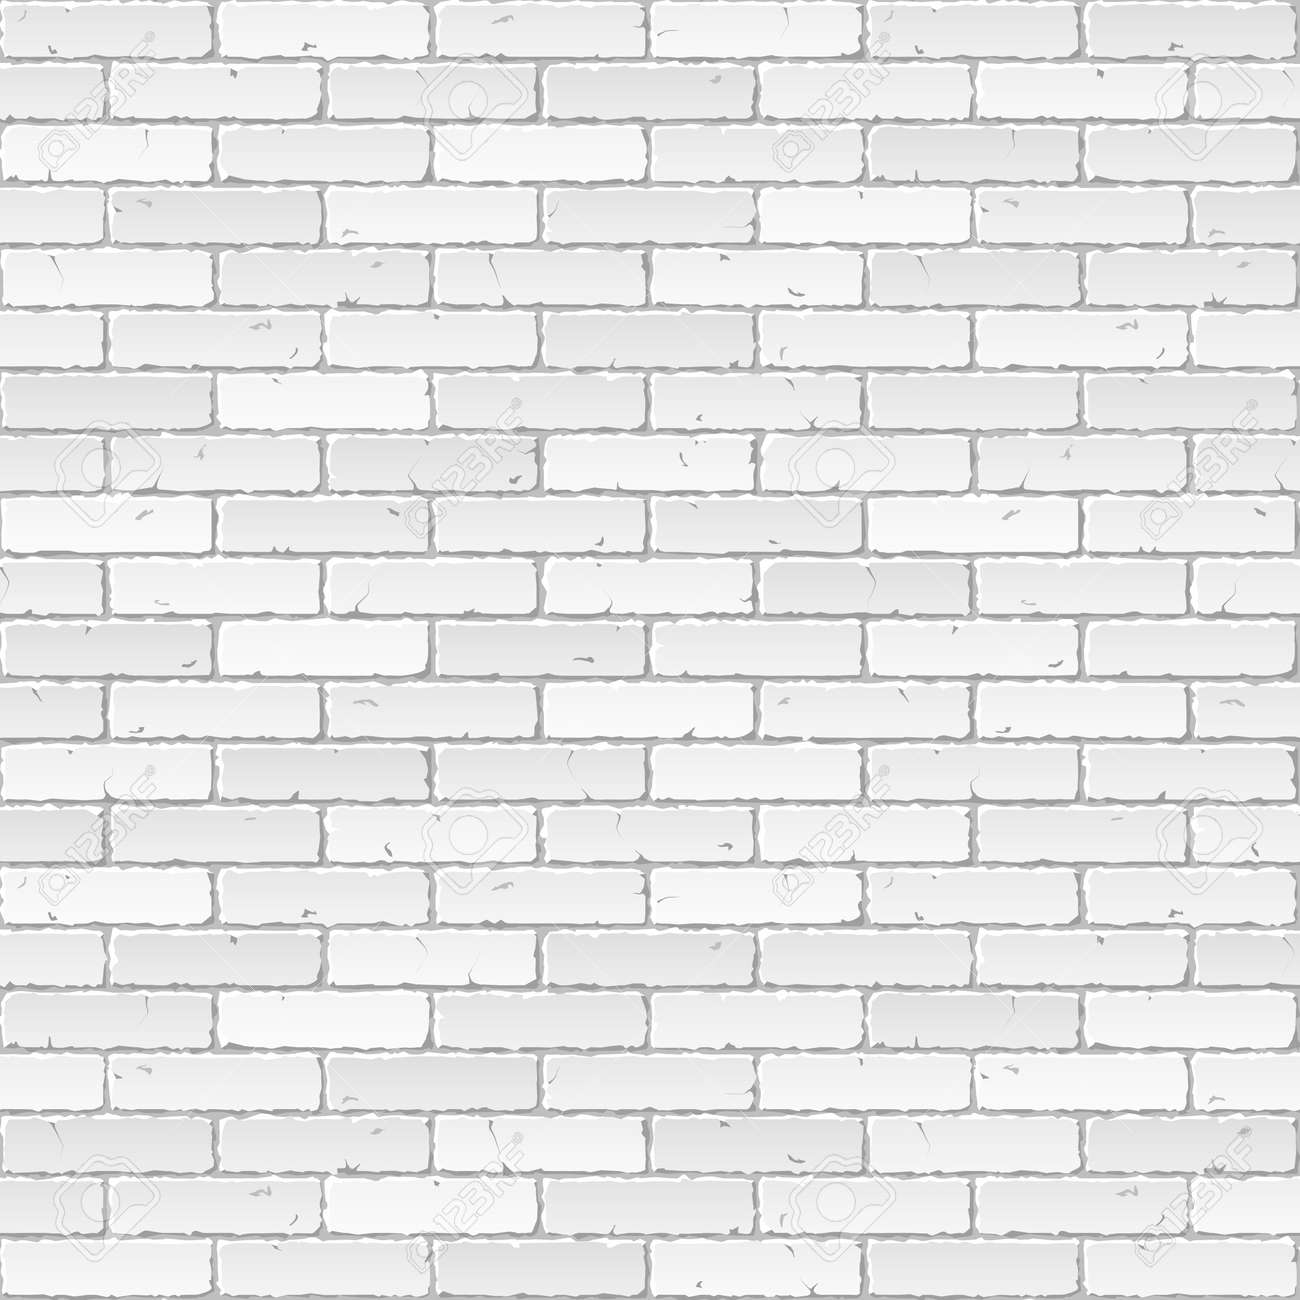 Design White Brick white brick wall royalty free cliparts vectors and stock vector 11870793